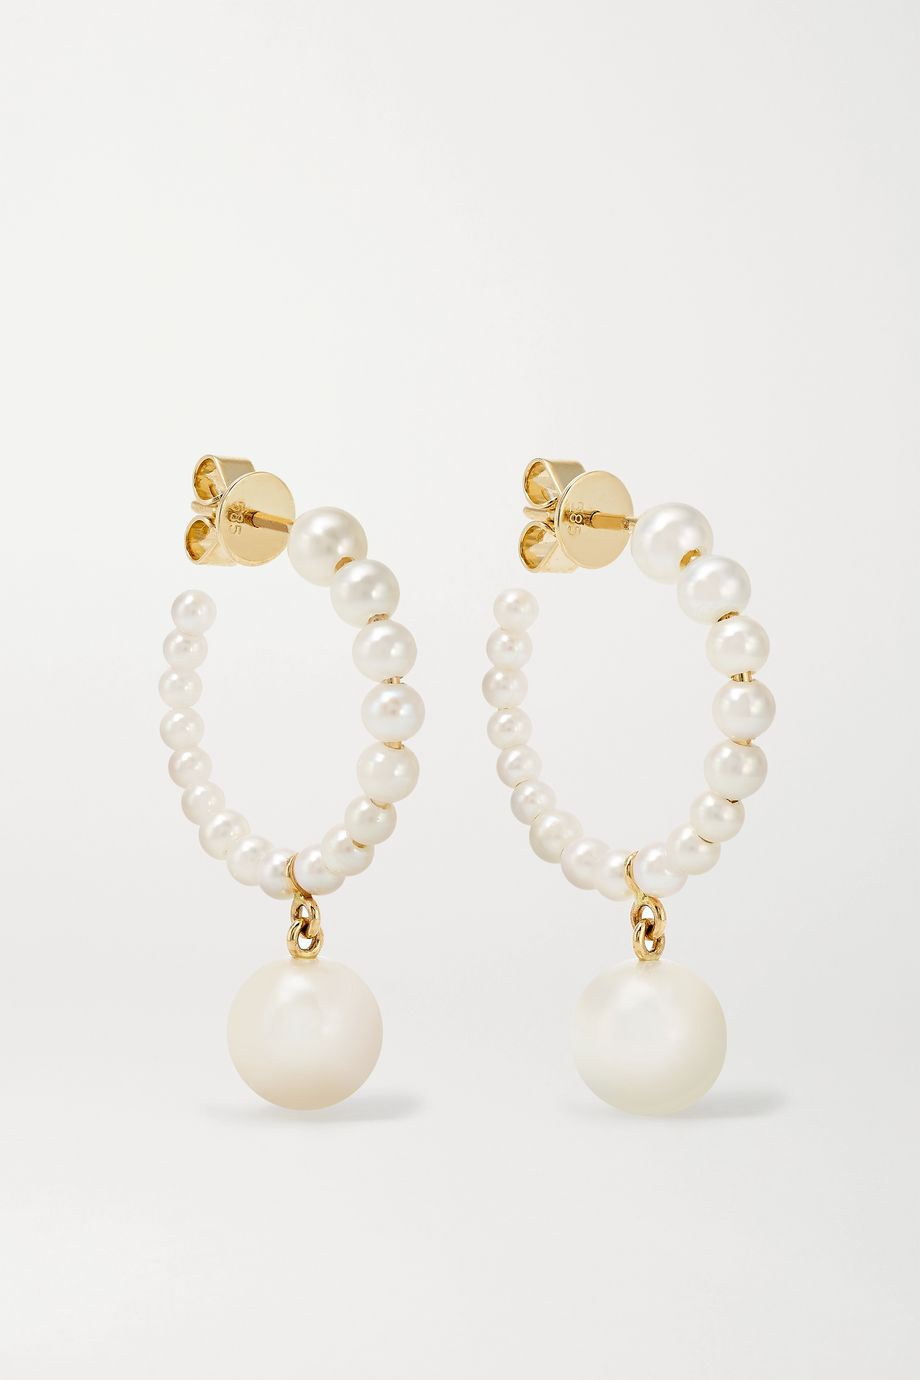 Sophie Bille Brahe Boucle Marco Perle 14K 黄金珍珠耳环